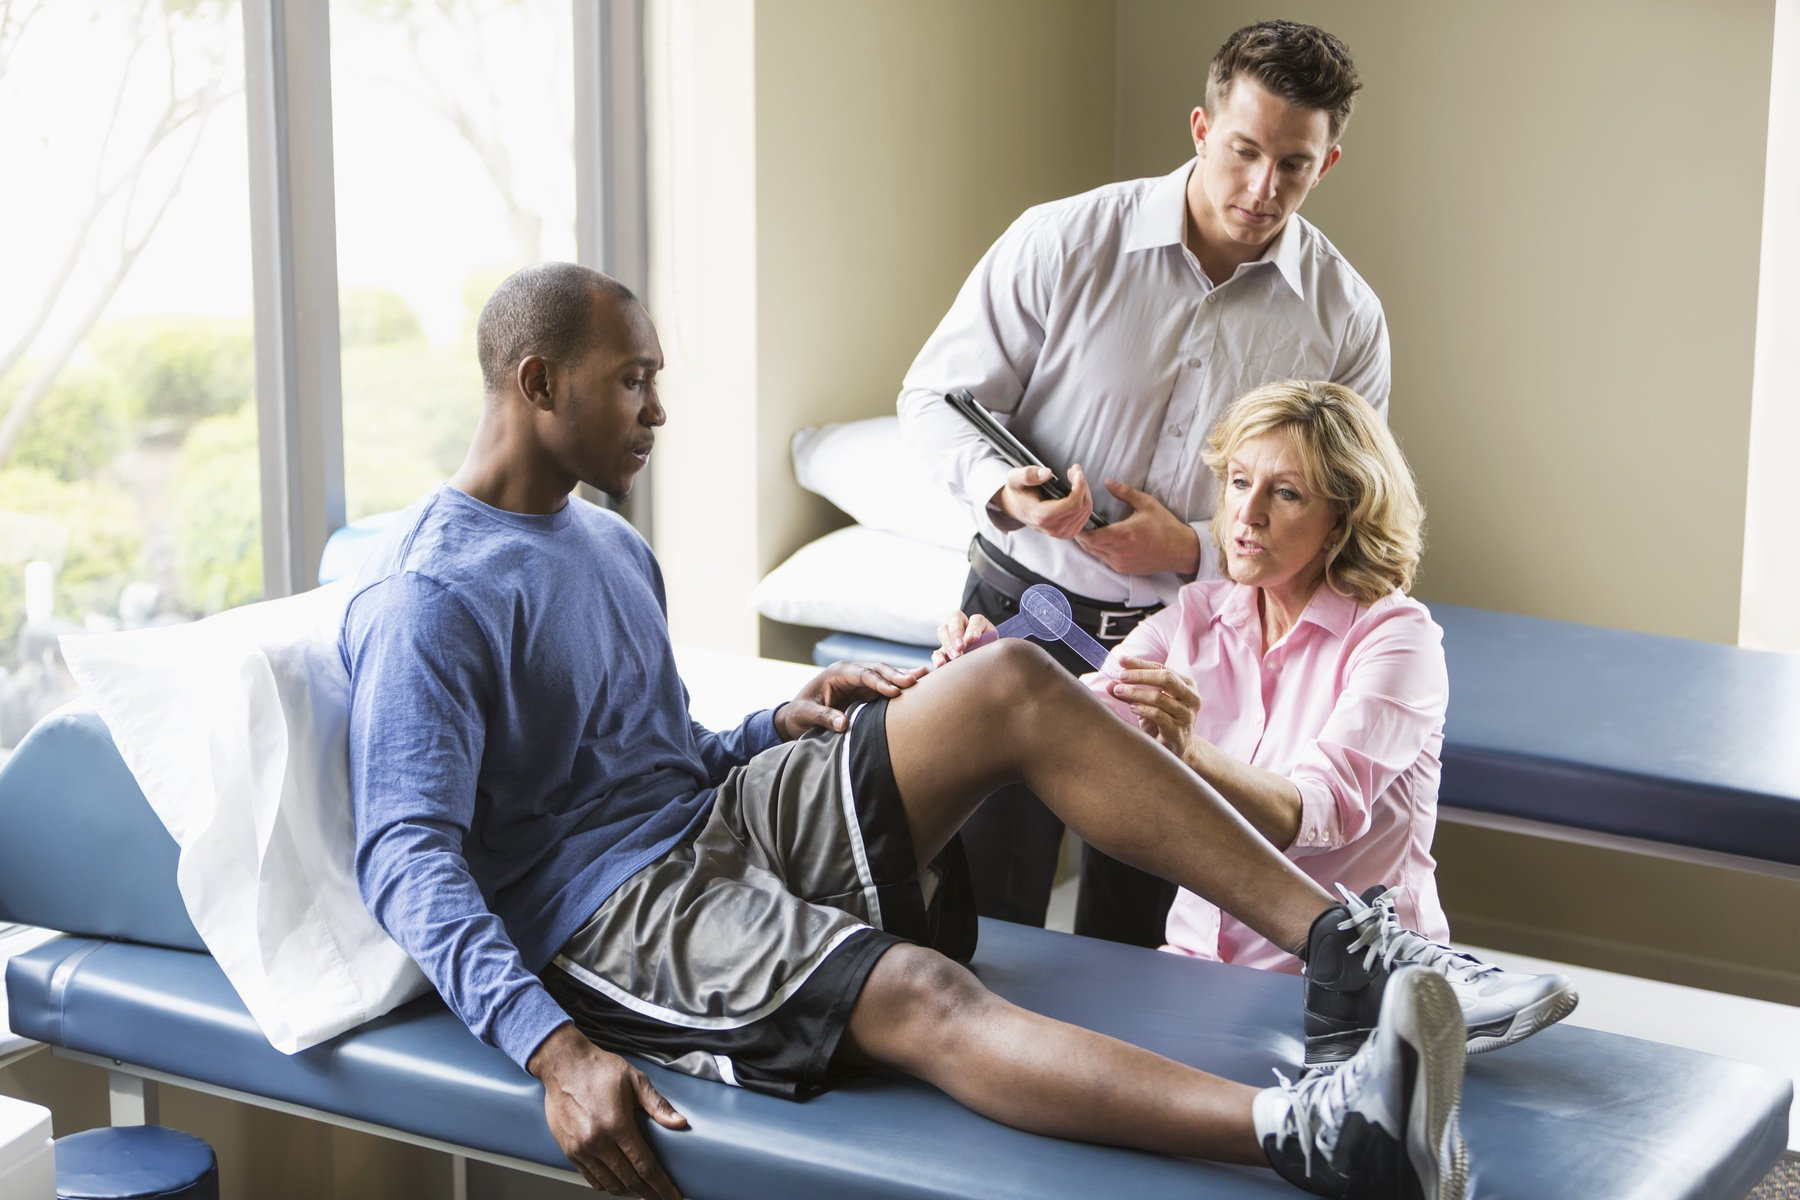 How to Prevent Knee Injury While Exercising